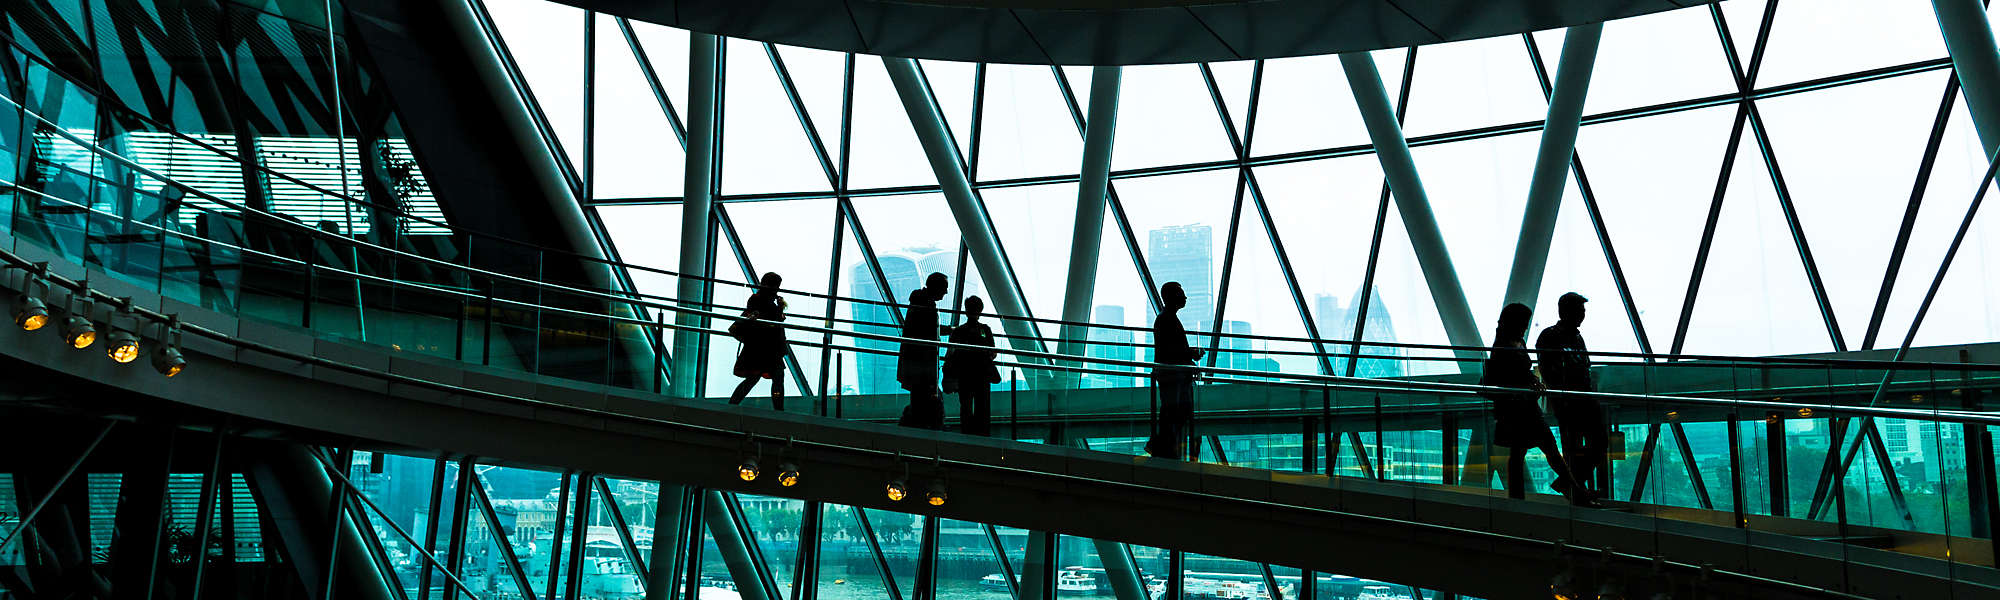 Abstract modern architecture and silhouettes of people on spiral staircase London England